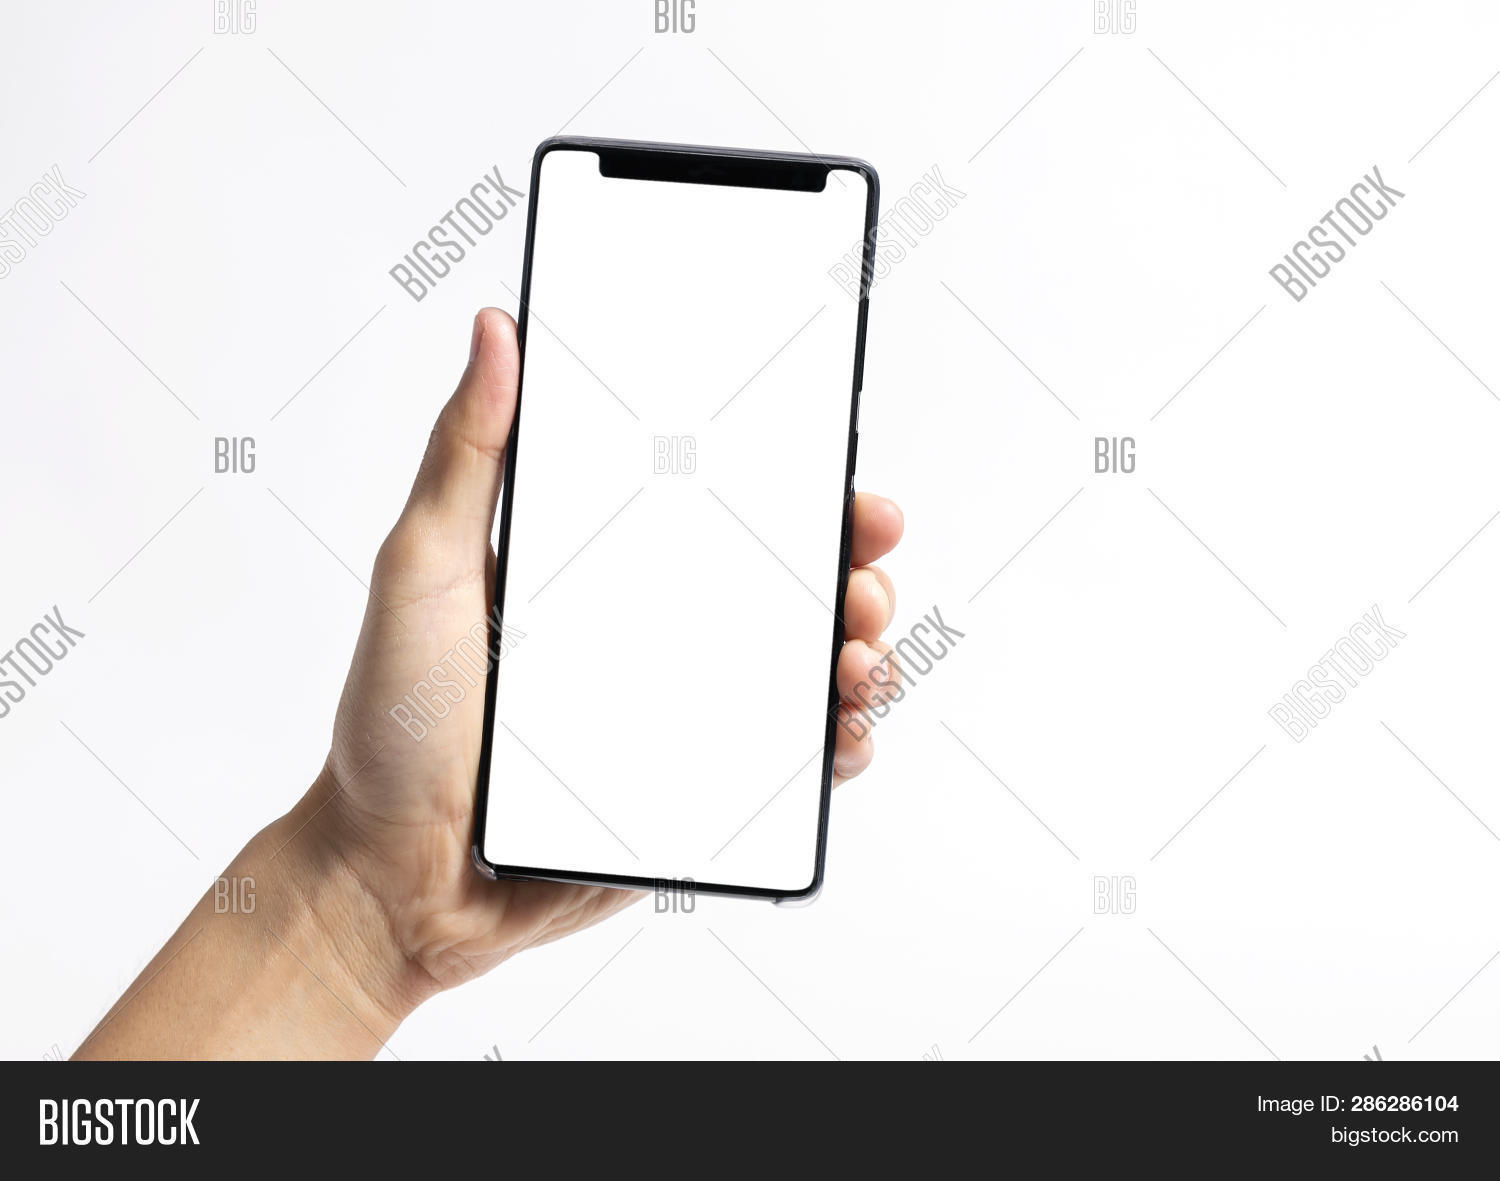 advertising,blank,brand,branding,business,cell,cellphone,communication,copy,creative,design,device,digital,display,electronic,empty,gadget,hand,holding,idea,identity,internet,isolated,lifestyle,logo,marketing,media,message,mobile,mockup,multimedia,network,online,phone,screen,smart,smartphone,social,space,technology,telephone,touch,using,white,wireless